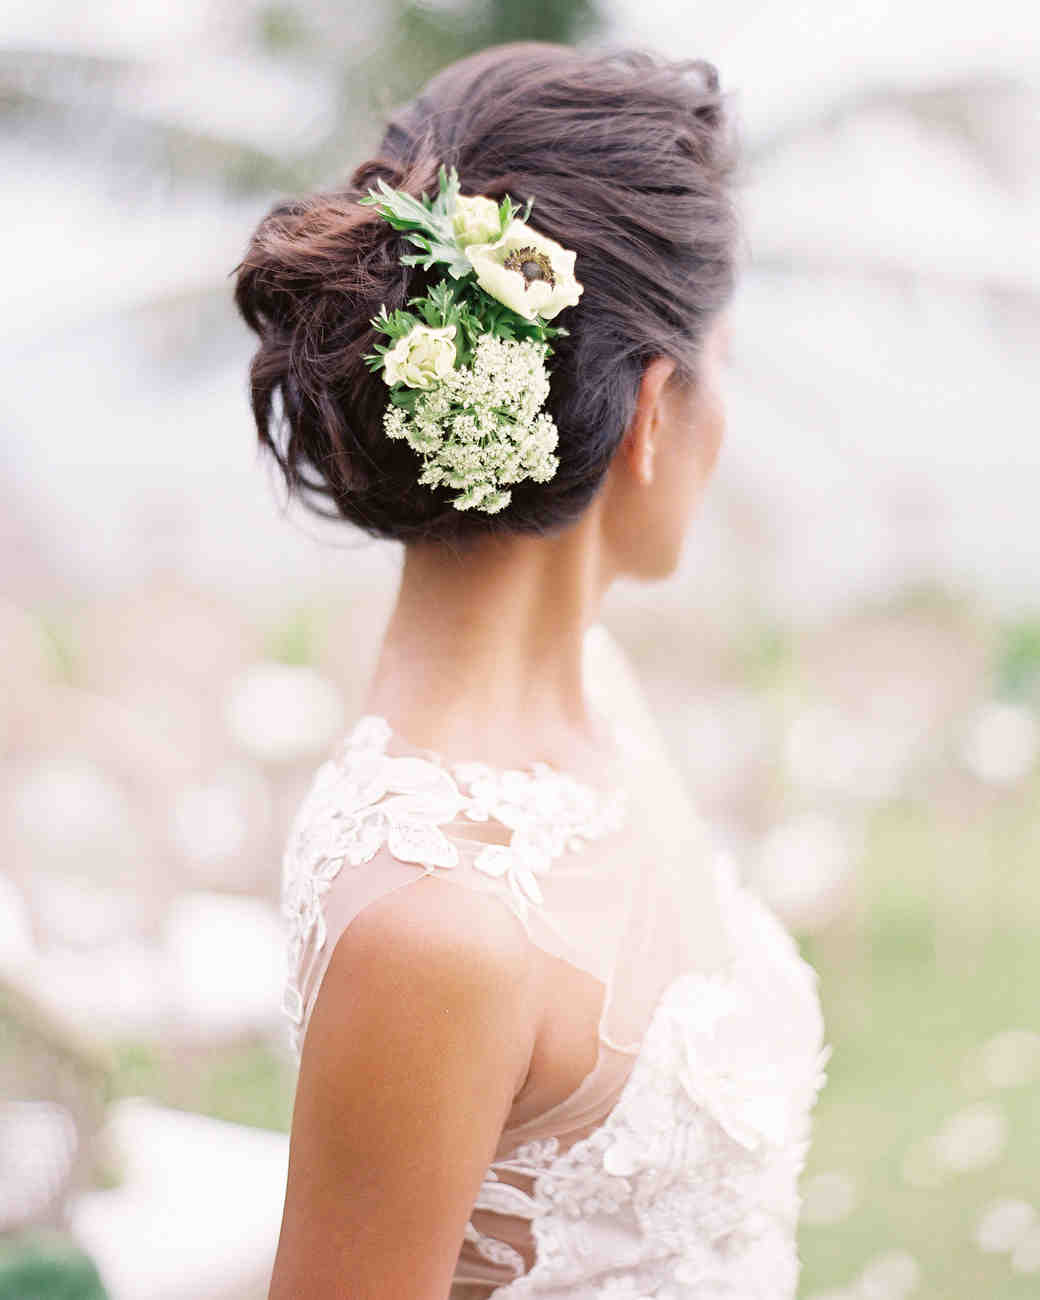 Wedding Hairstyle For Bride: 20 Wedding Hairstyles With Flowers